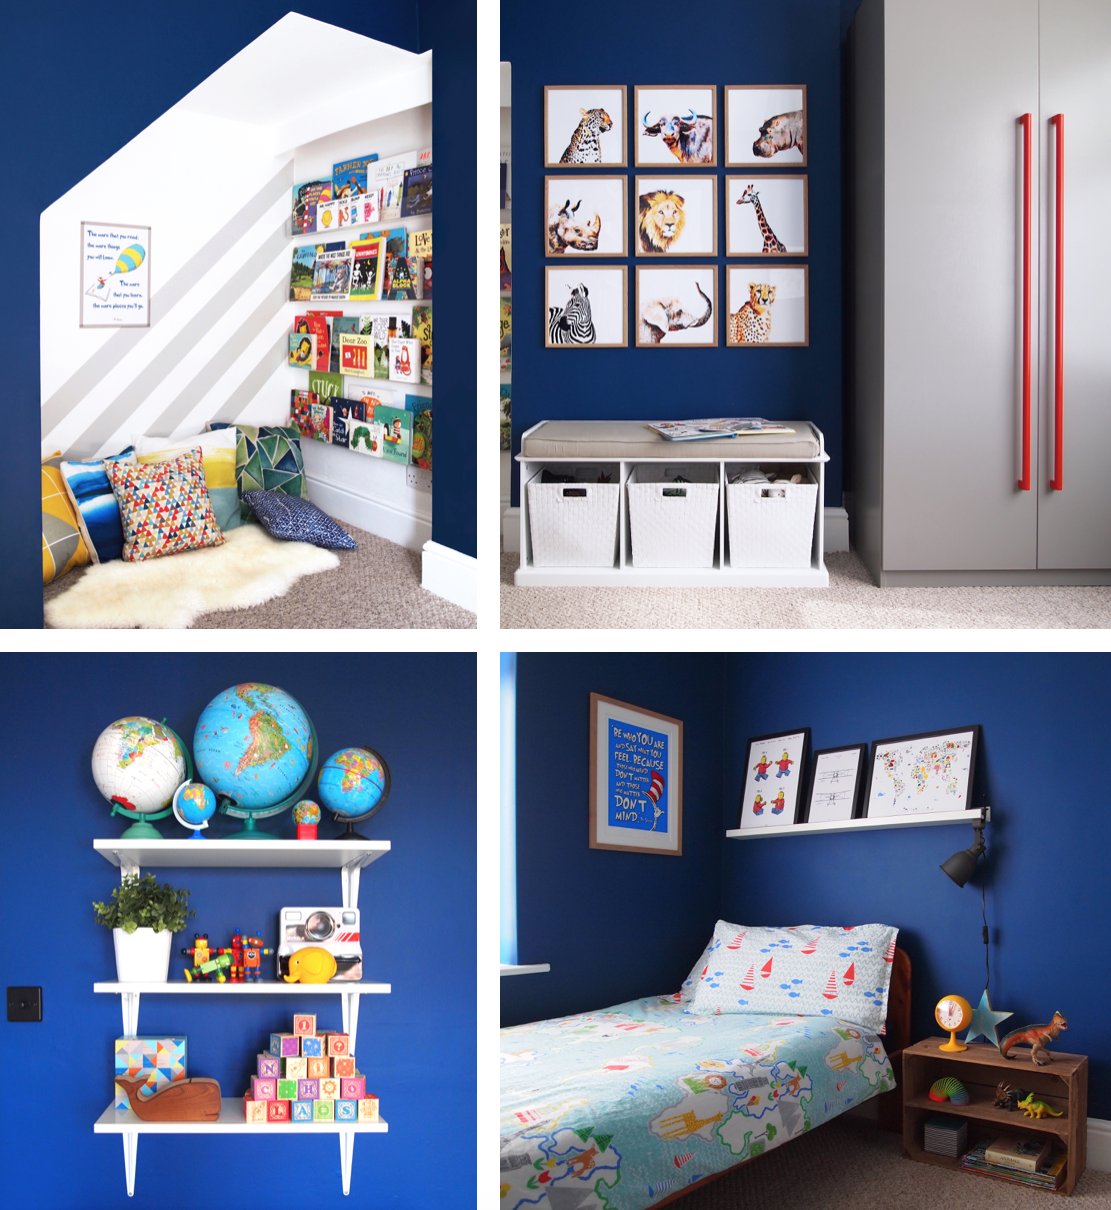 Kid's room with deep blue walls and a cosy reading nook